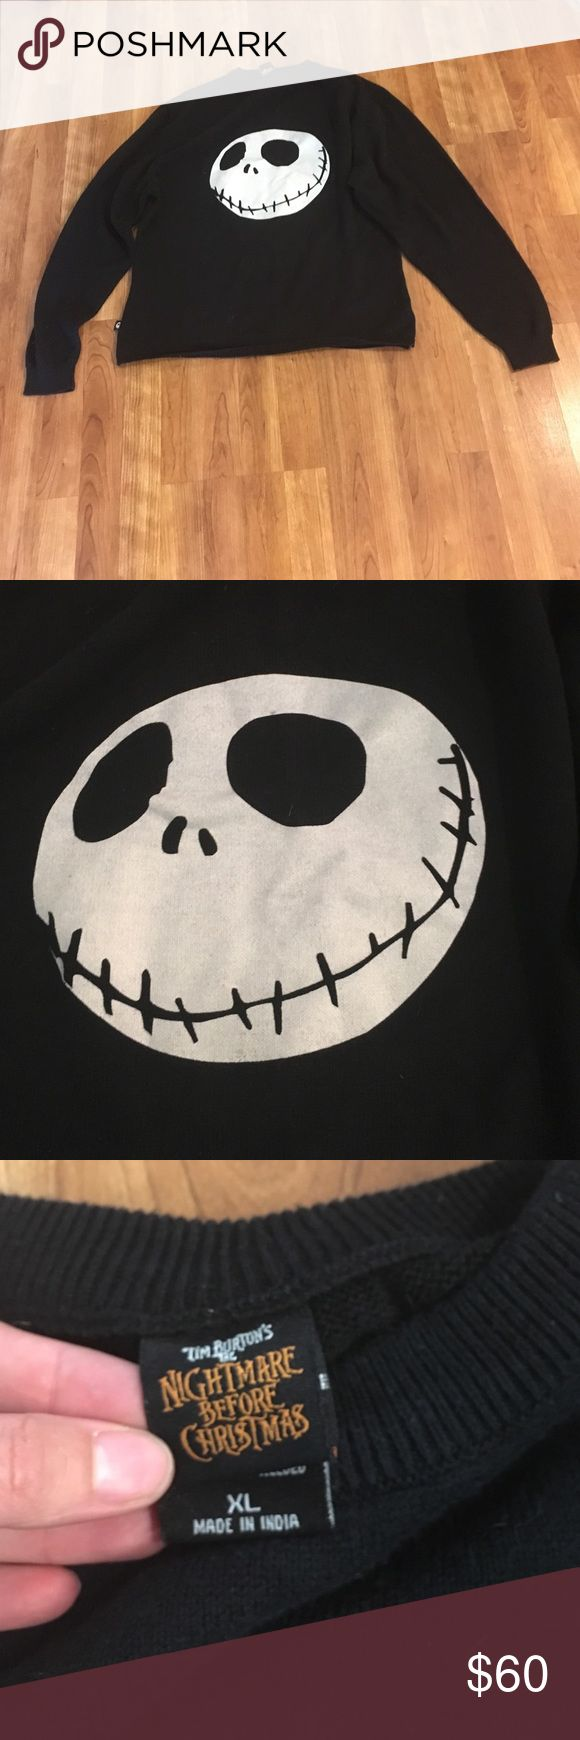 The 25+ best Nightmare before christmas sweater ideas on Pinterest ...